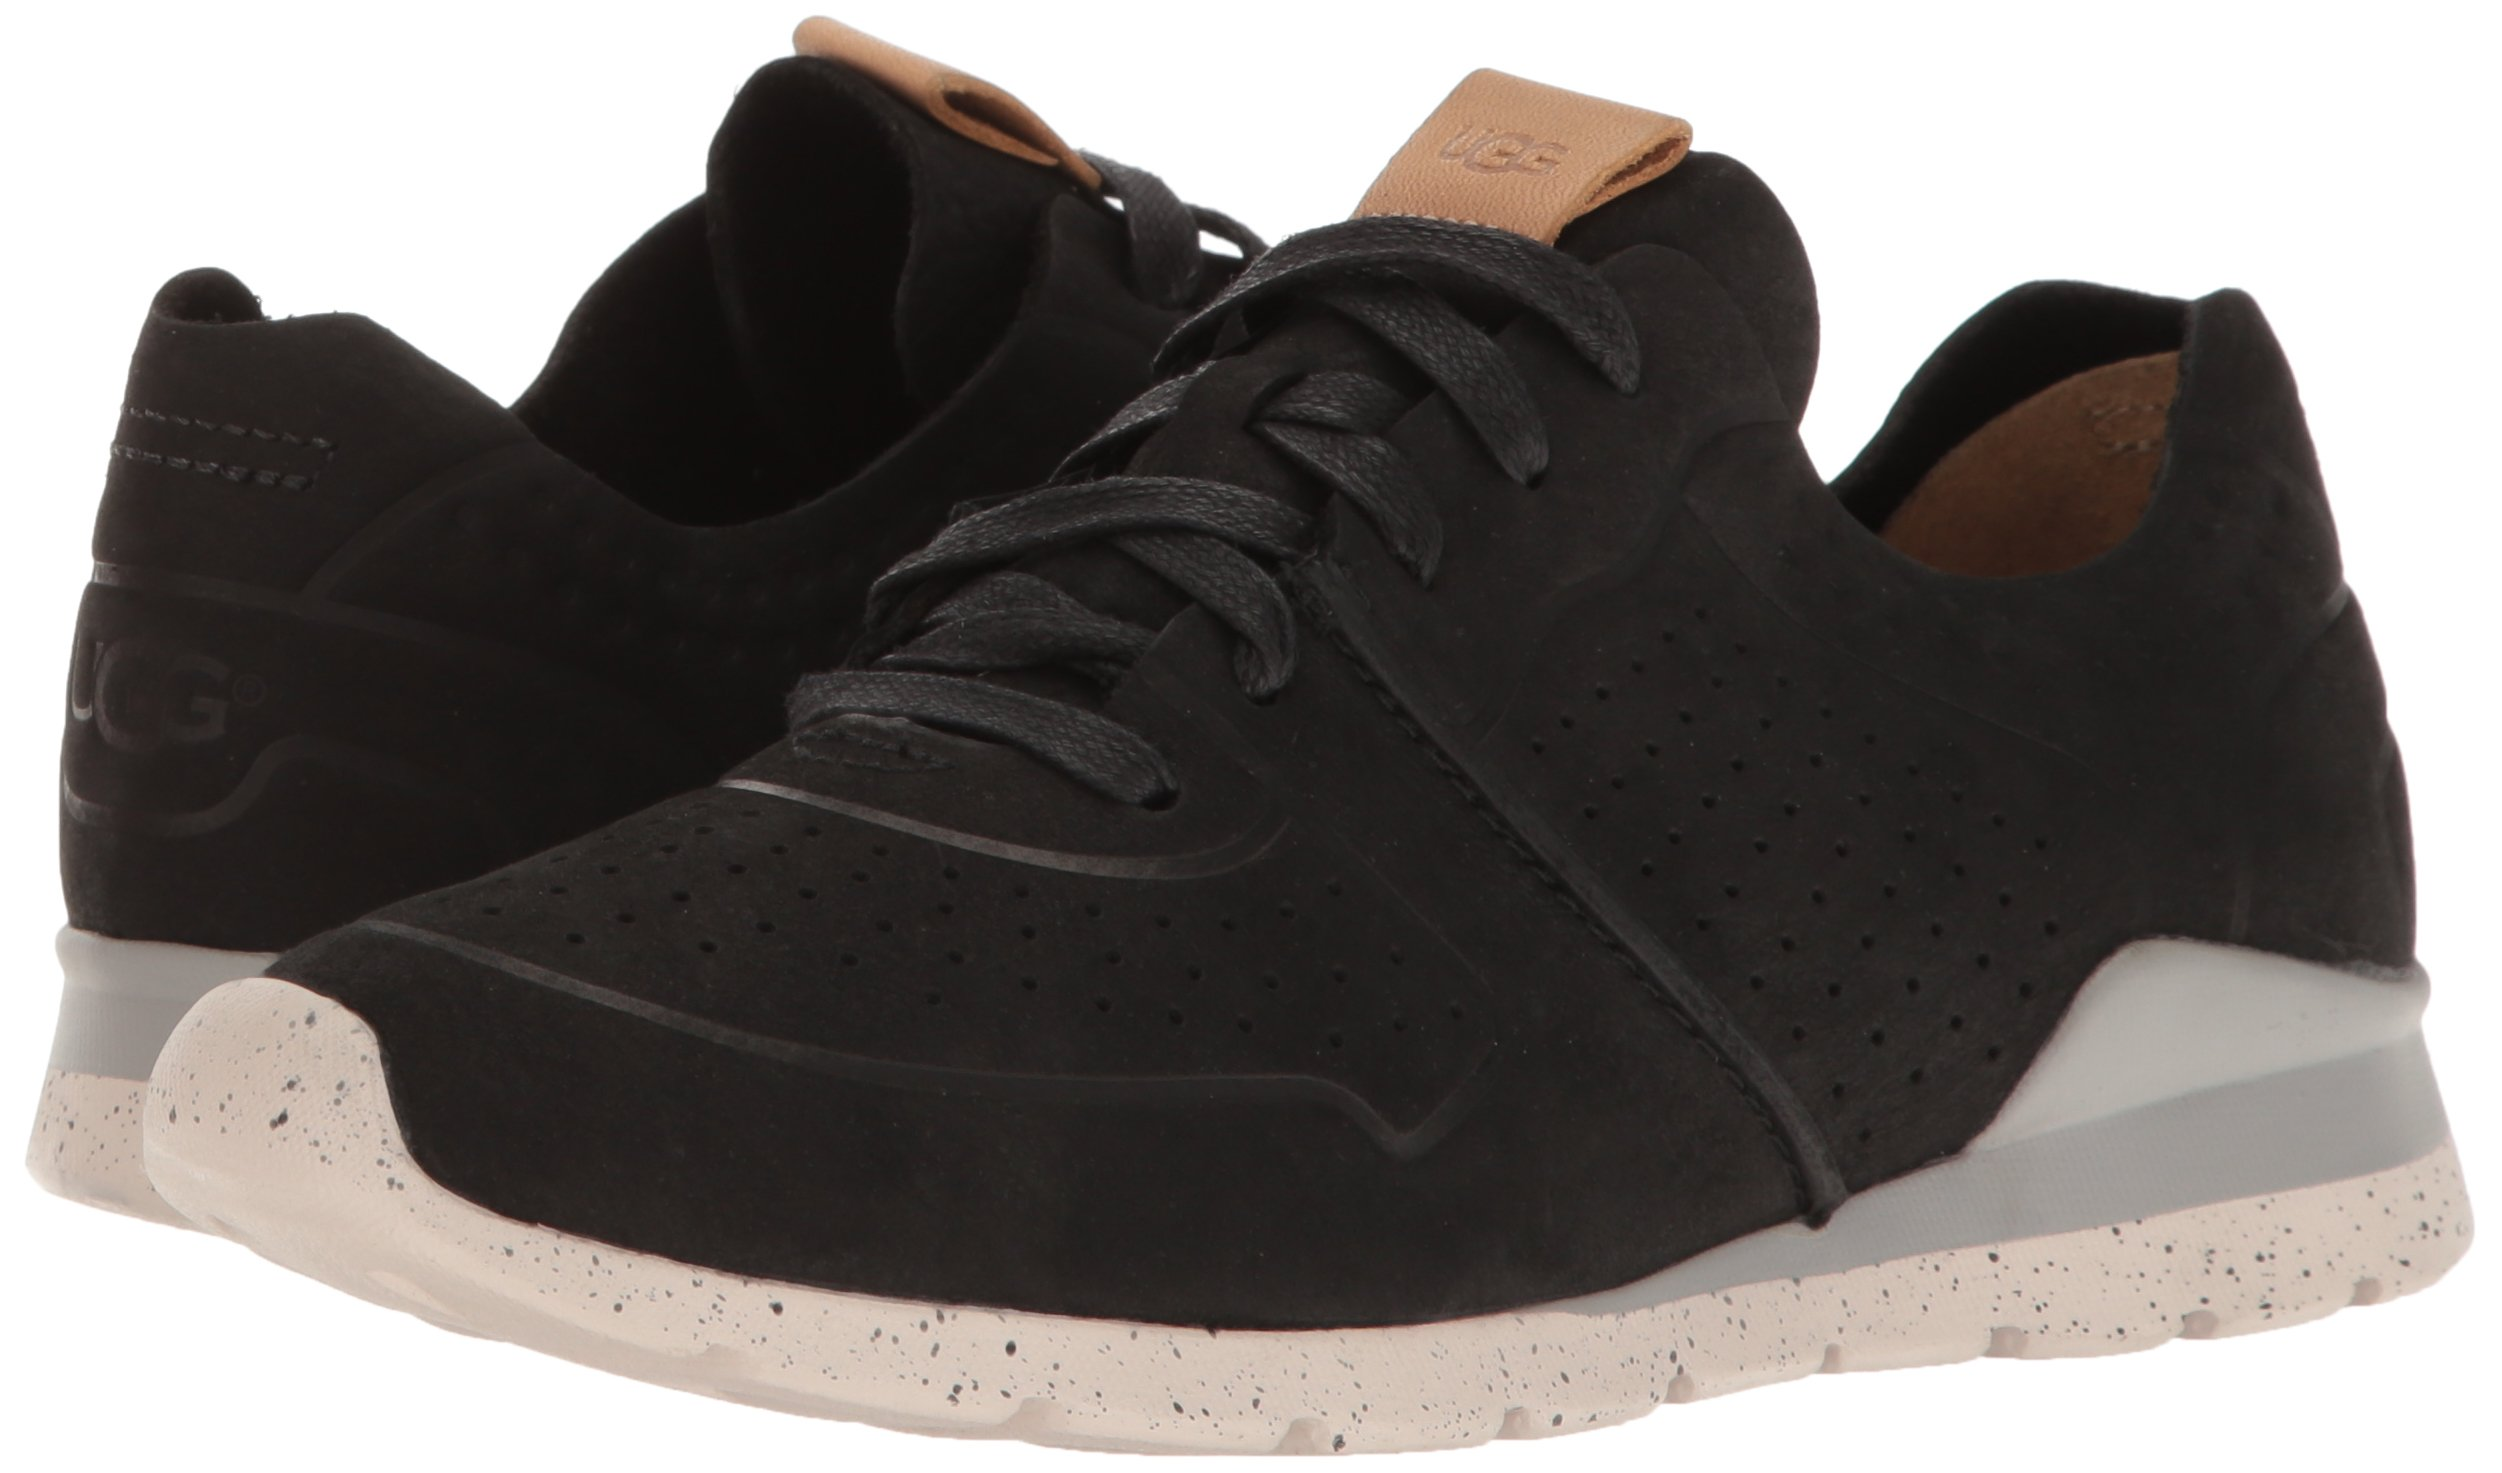 UGG Women's Tye Fashion Sneaker, Black, 8.5 US/8.5 B US by UGG (Image #6)